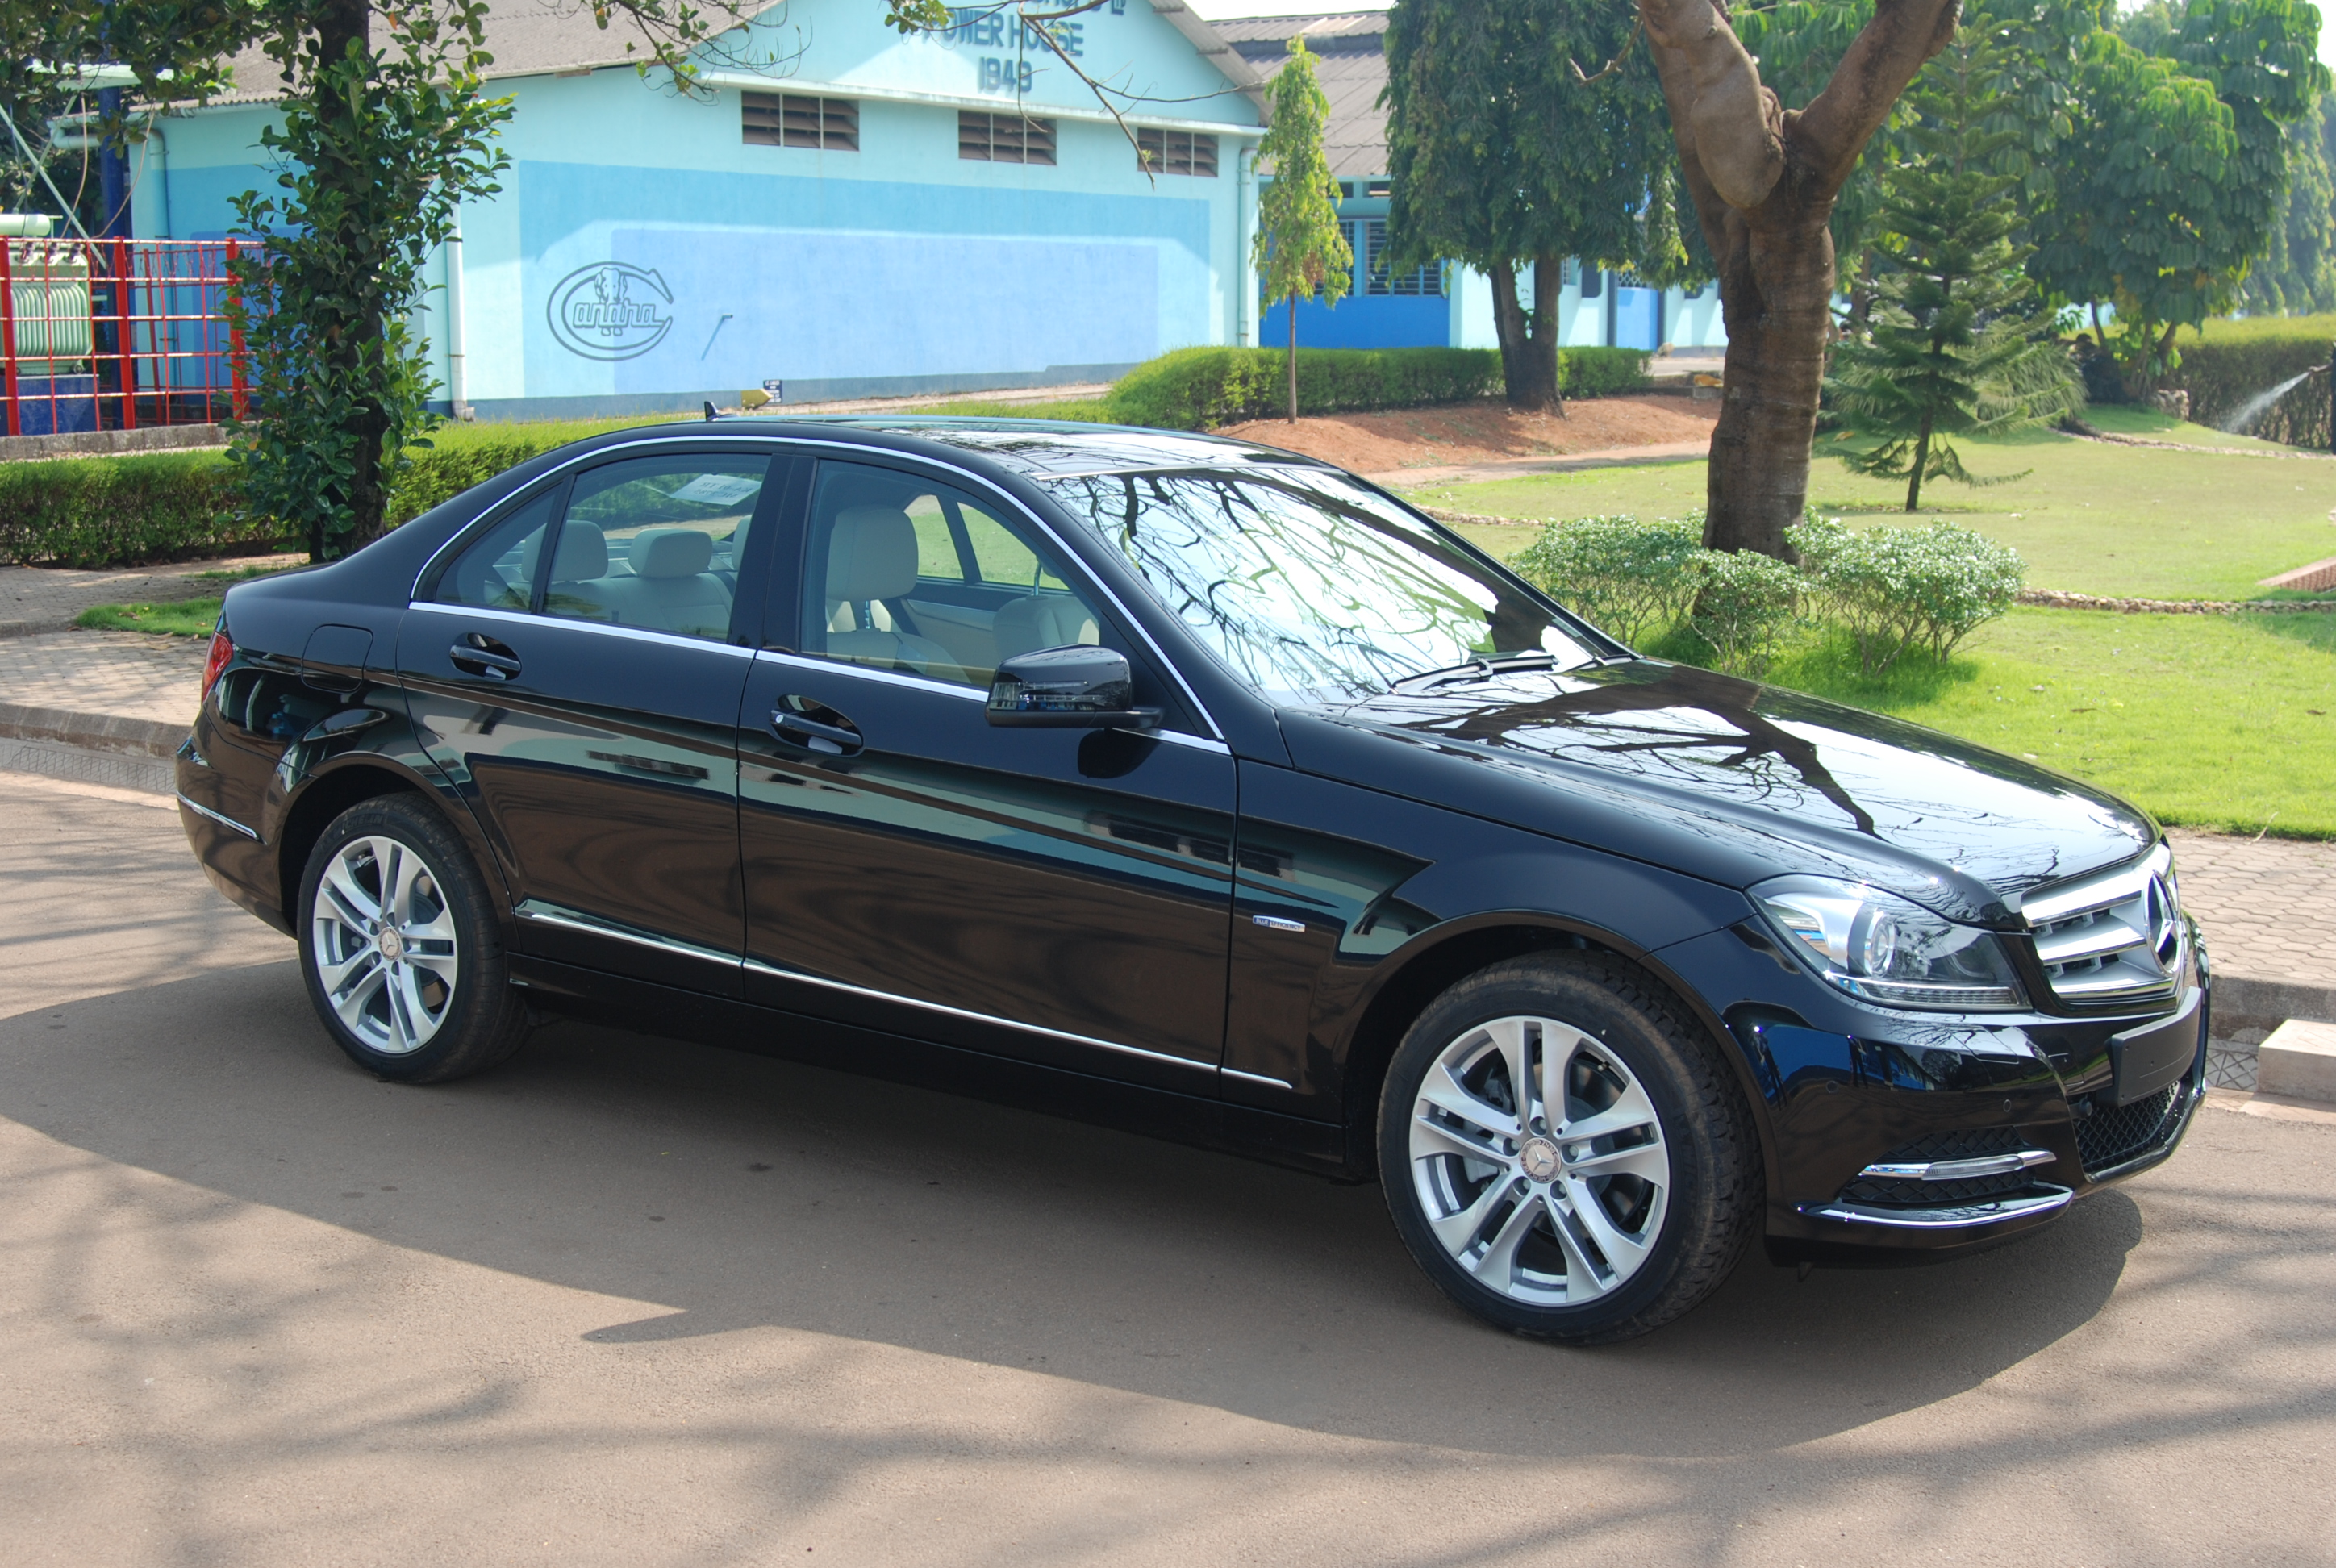 Mercedes Benz C Class  Price In South Africa